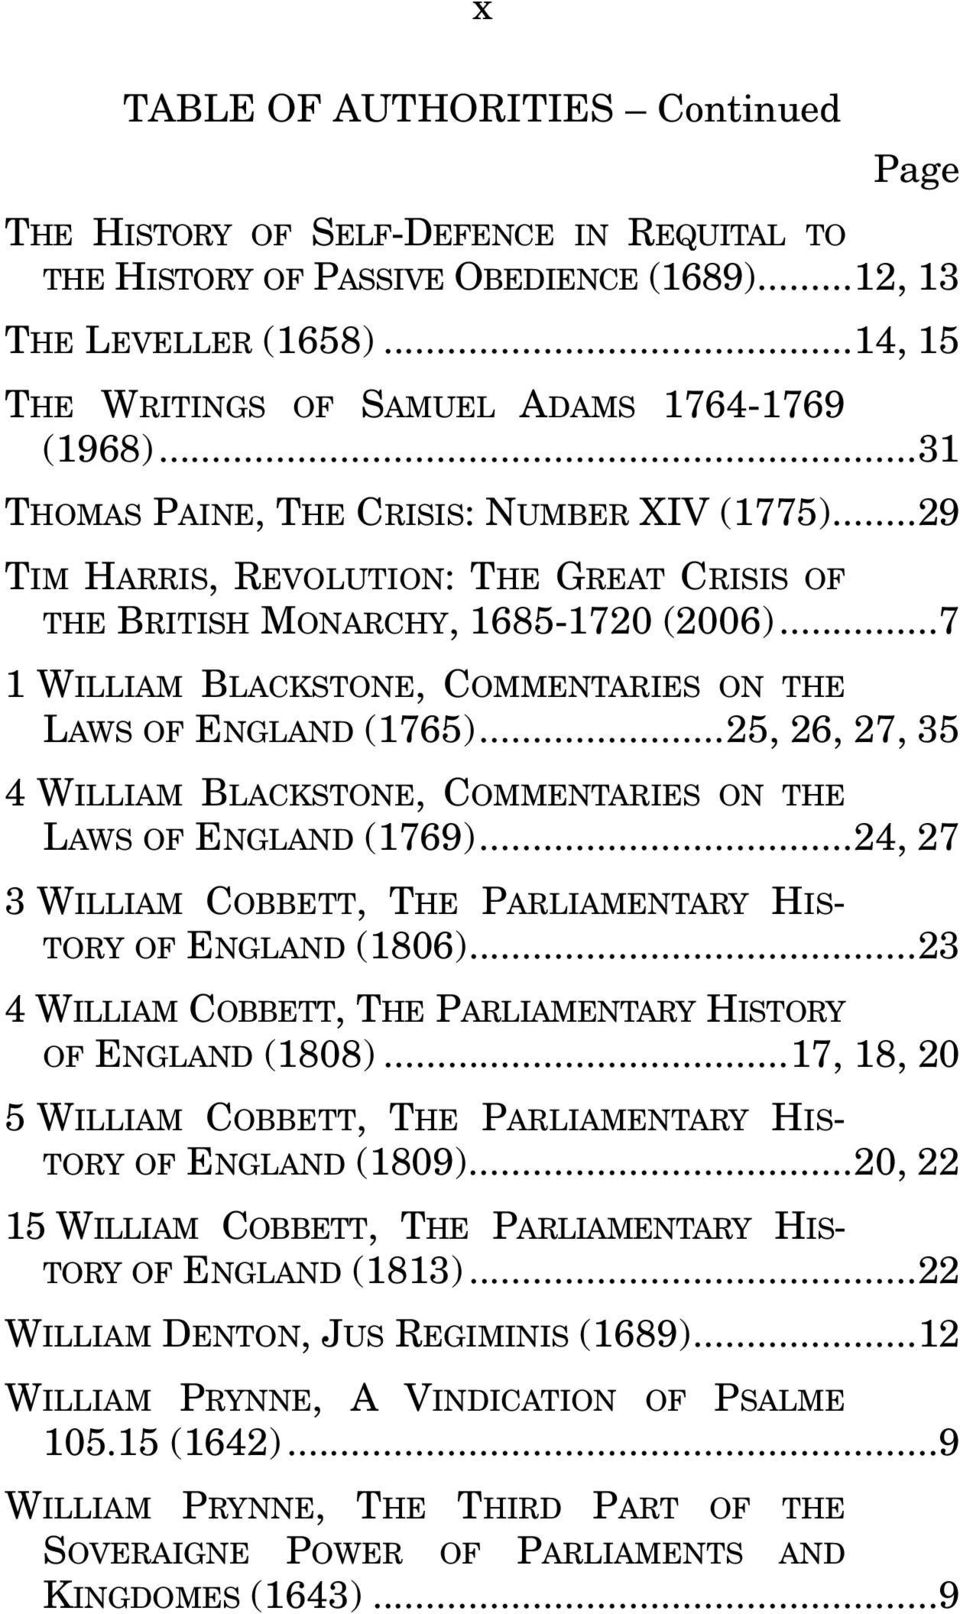 .. 7 1 WILLIAM BLACKSTONE, COMMENTARIES ON THE LAWS OF ENGLAND (1765)... 25, 26, 27, 35 4 WILLIAM BLACKSTONE, COMMENTARIES ON THE LAWS OF ENGLAND (1769).